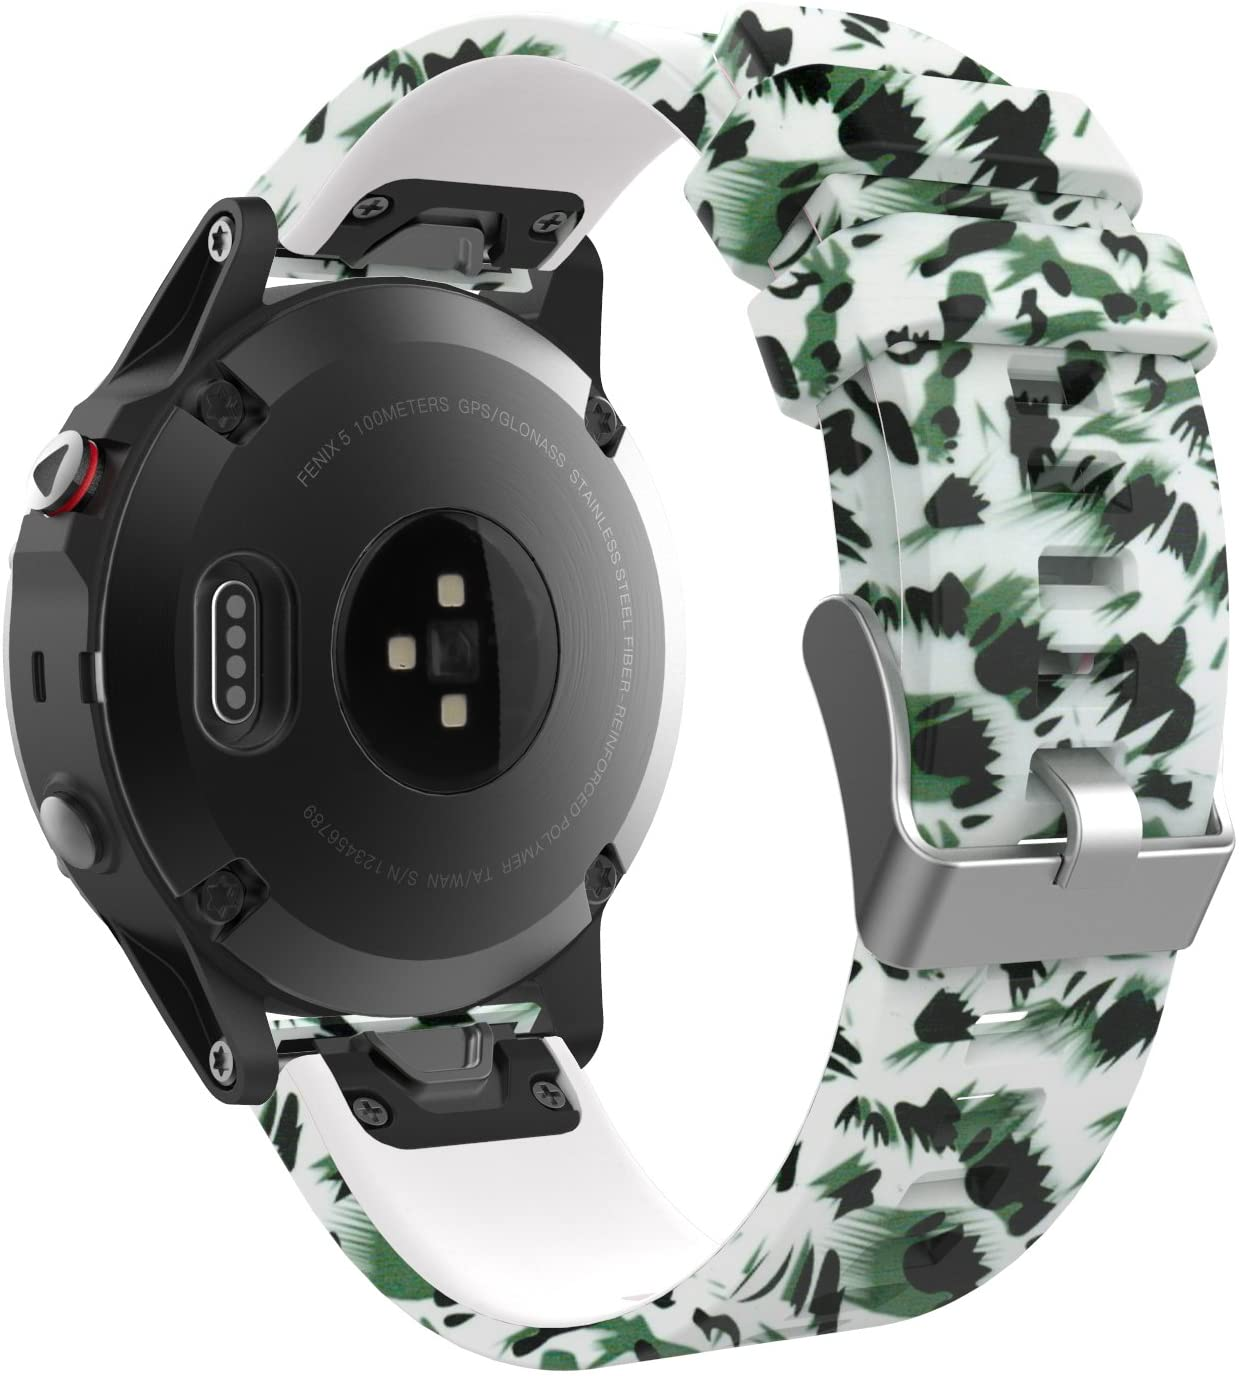 MoKo 22mm Band Compatible with Garmin Fenix 6/6 Pro/Fenix 5/5 Plus/Forerunner 935/Aproach S60, Printing Pattern Silicone Strap, Ink Painting